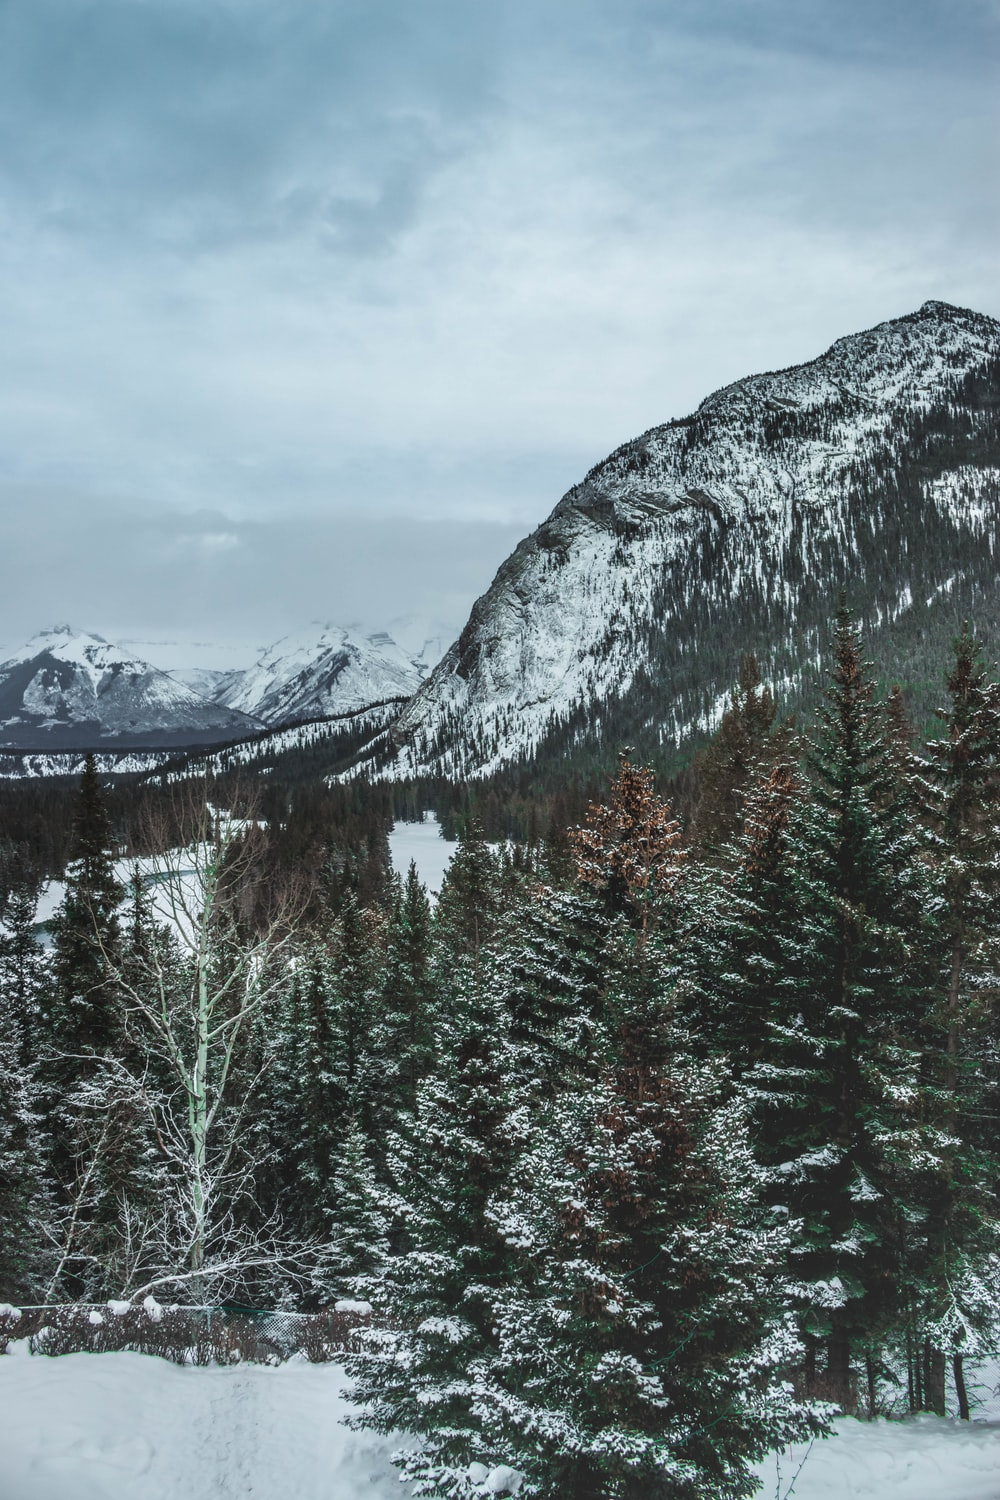 green pine trees near snow covered mountain during daytime